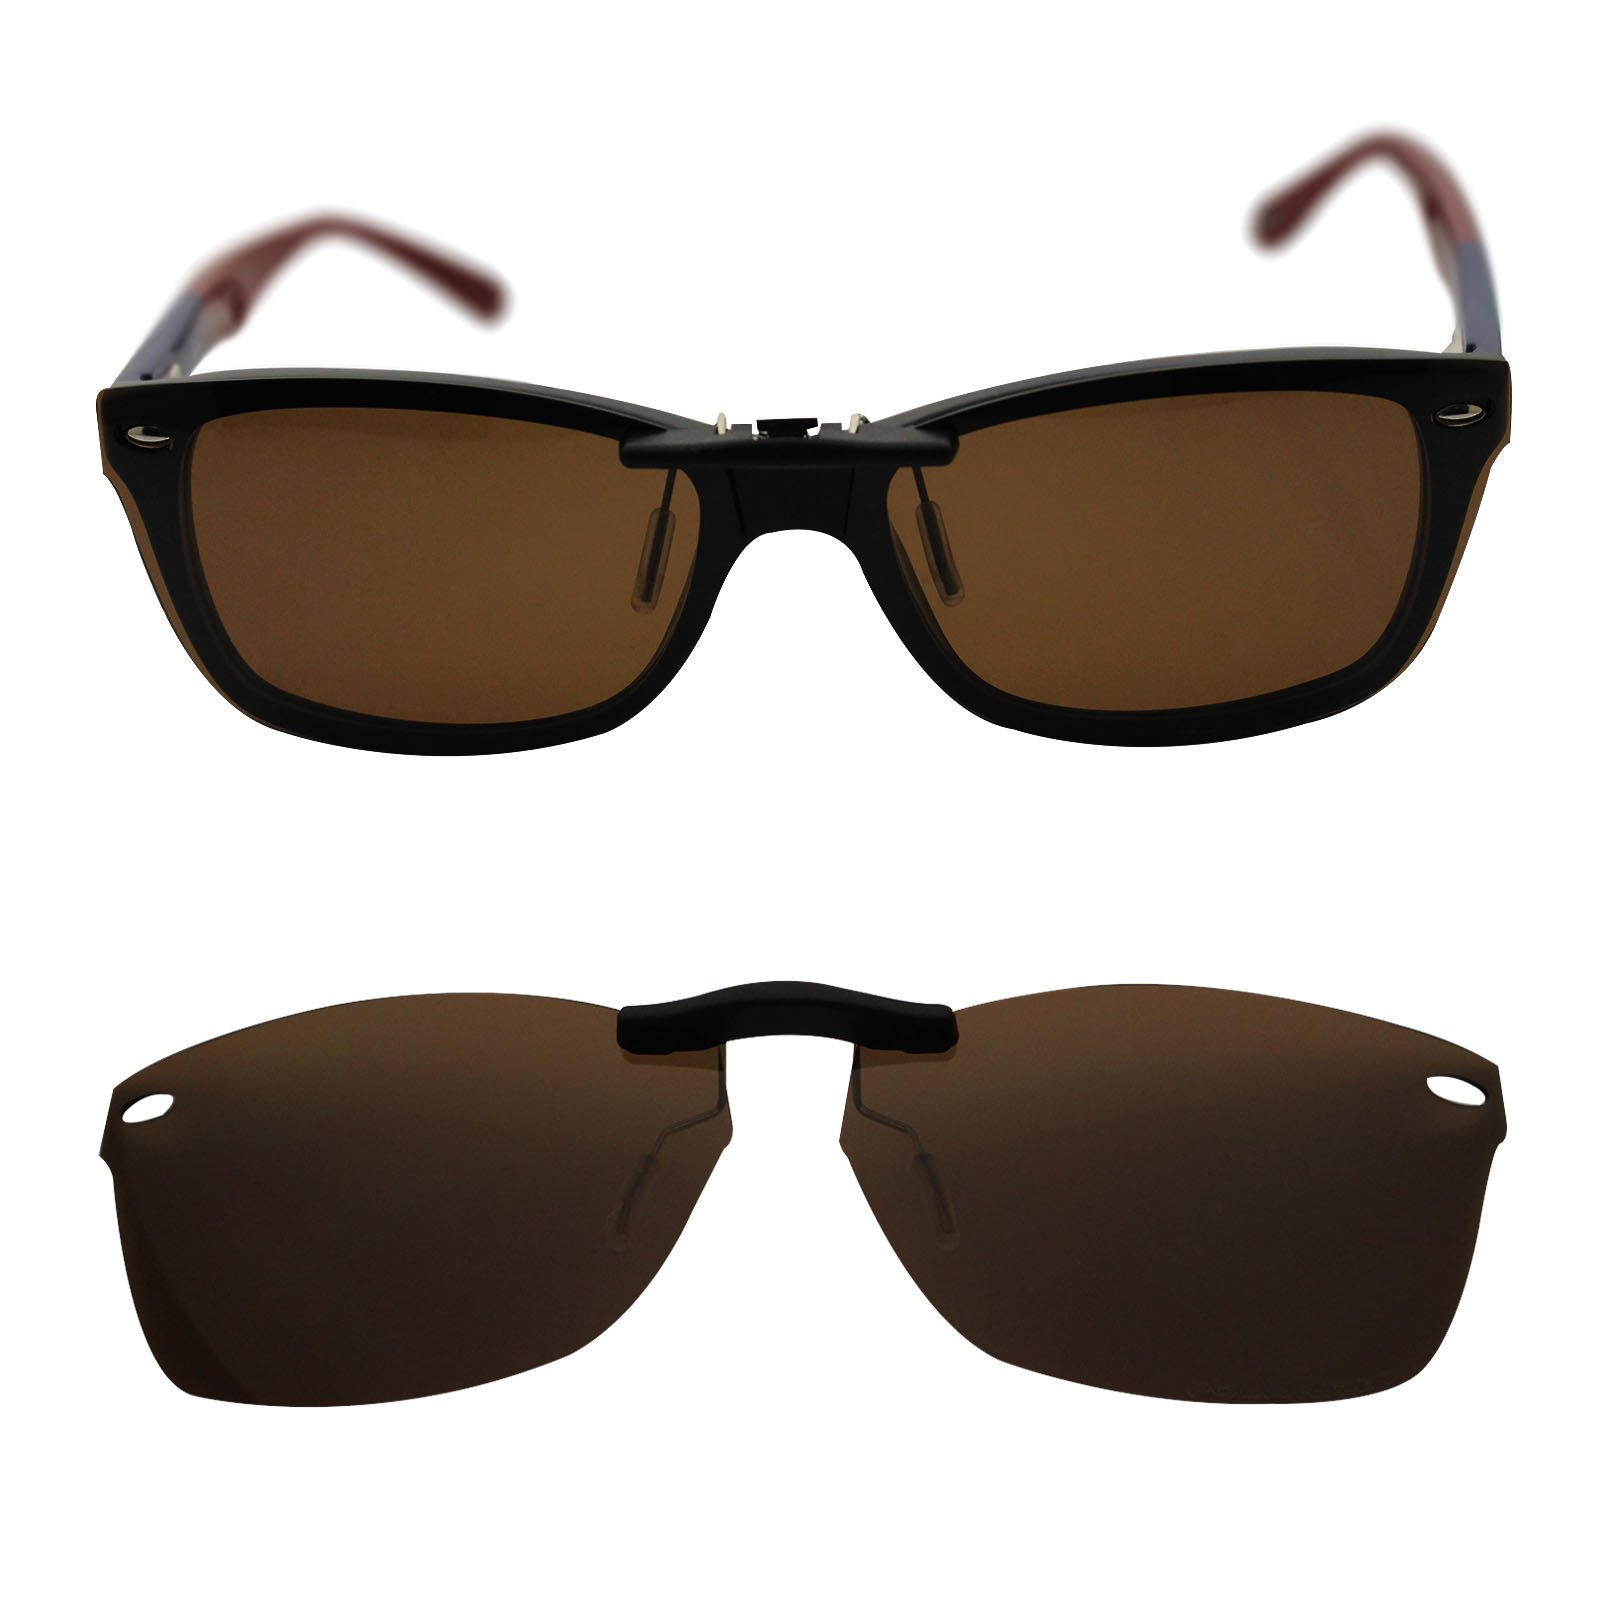 oGeee Custom Polarized Clip On Sunglasses for RAY-BAN RB5228 (55mm) 55-17-140 (Brown)